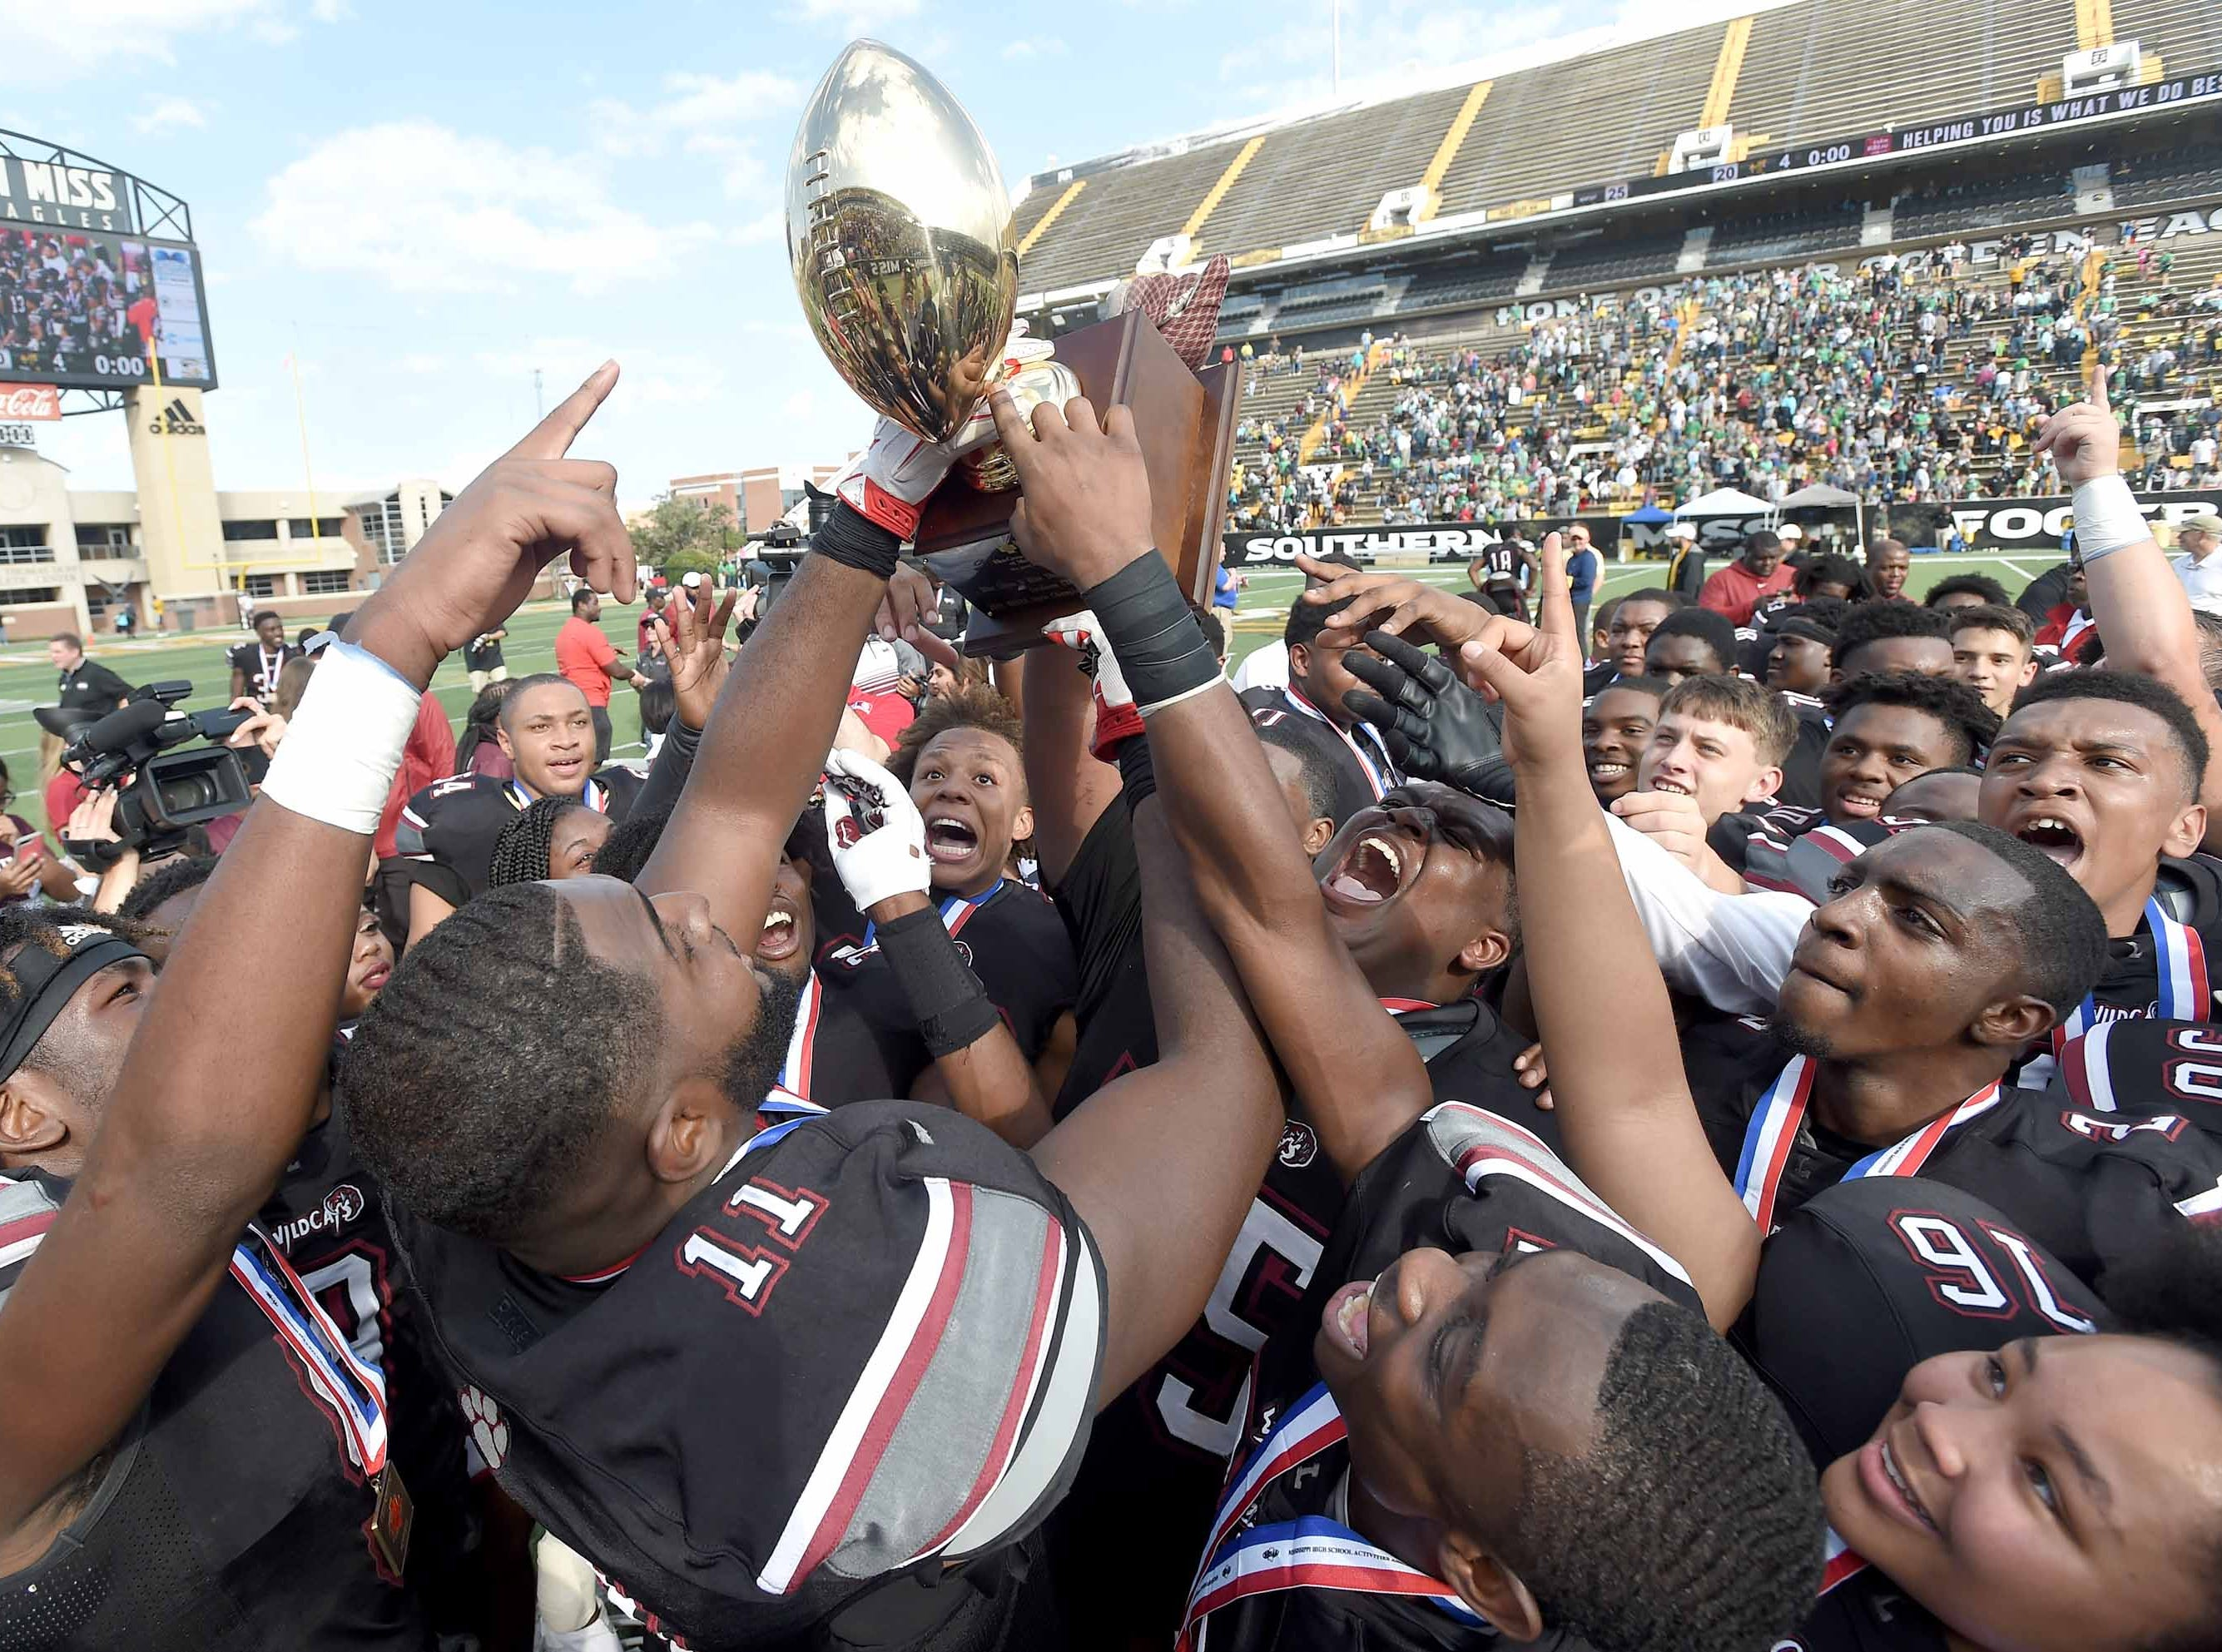 The Louisville Wildcats celebrate with the Class 4A trophy after beating Poplarville on Saturday, December 1, 2018, in the MHSAA BlueCross BlueShield Gridiron Classic High School Football Championships in M.M. Roberts Stadium on the University of Southern Mississippi campus in Hattiesburg, Miss.